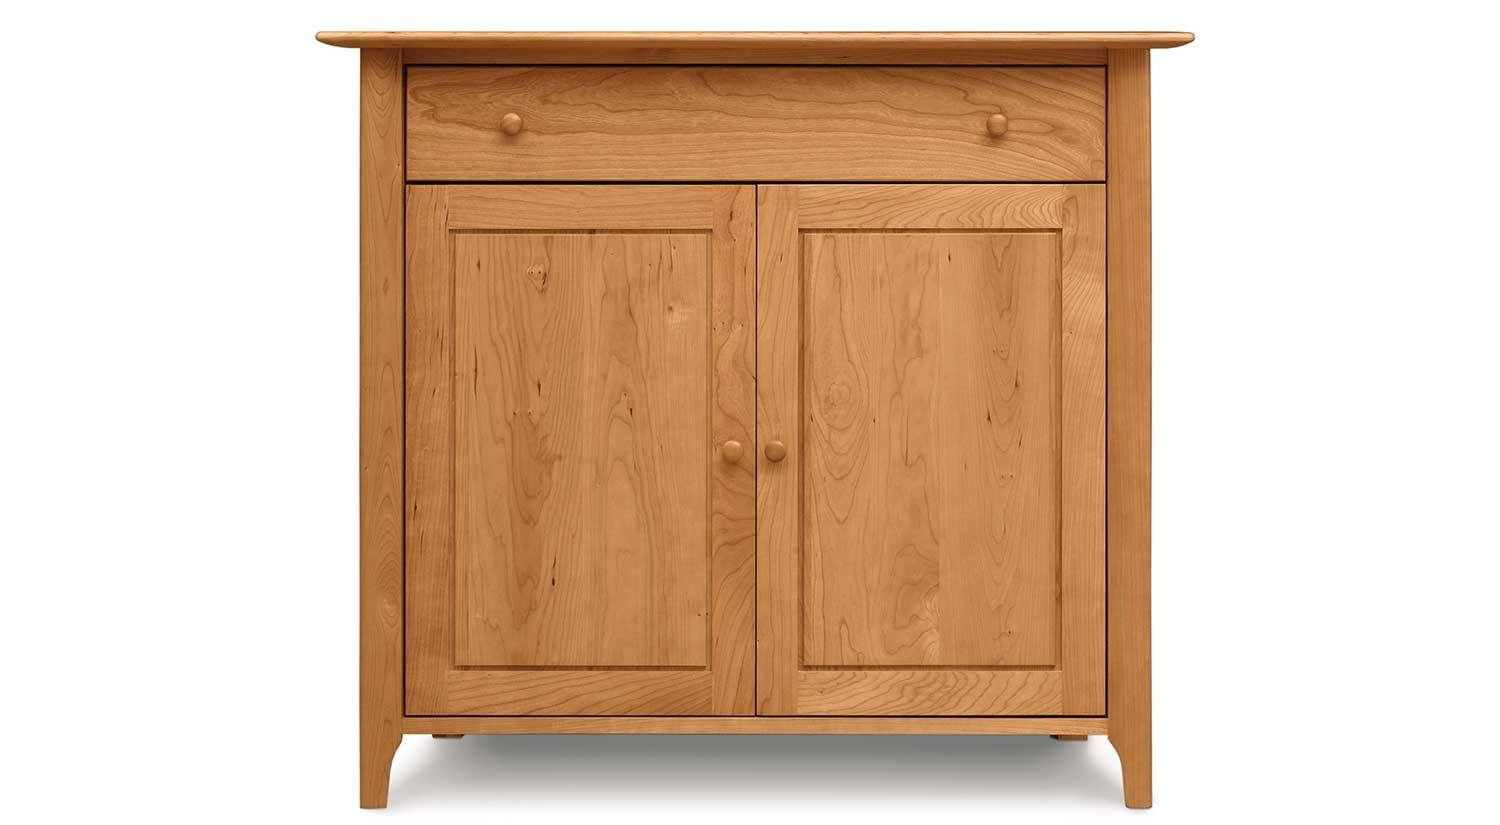 Circle Furniture – Sarah Small Buffet | Cherry Buffet | Dining Inside Narrow Kitchen Sideboards (View 13 of 15)